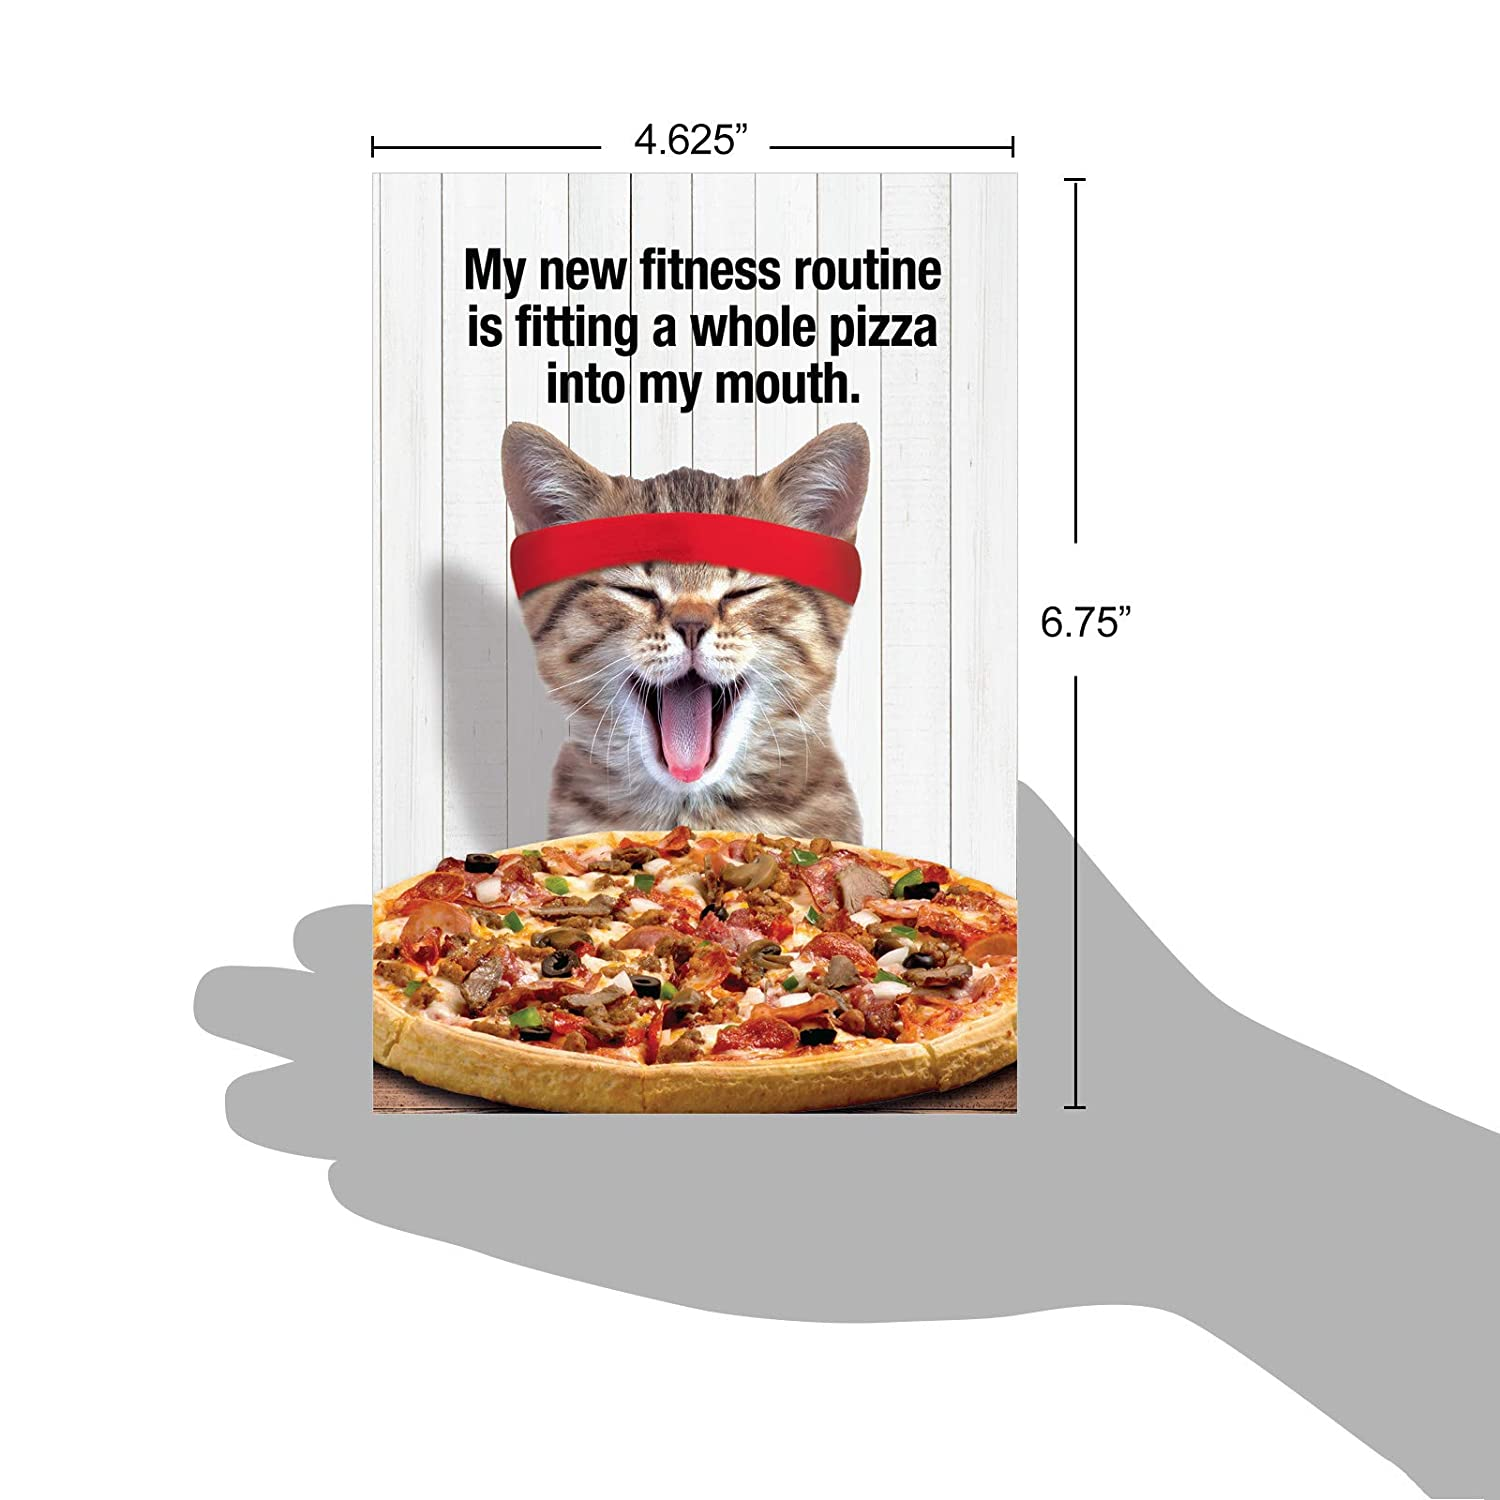 Pizza Fitness Hysterical Birthday Card Showing A Eating Cat With Envelope Office Products Jpg 1500x1500